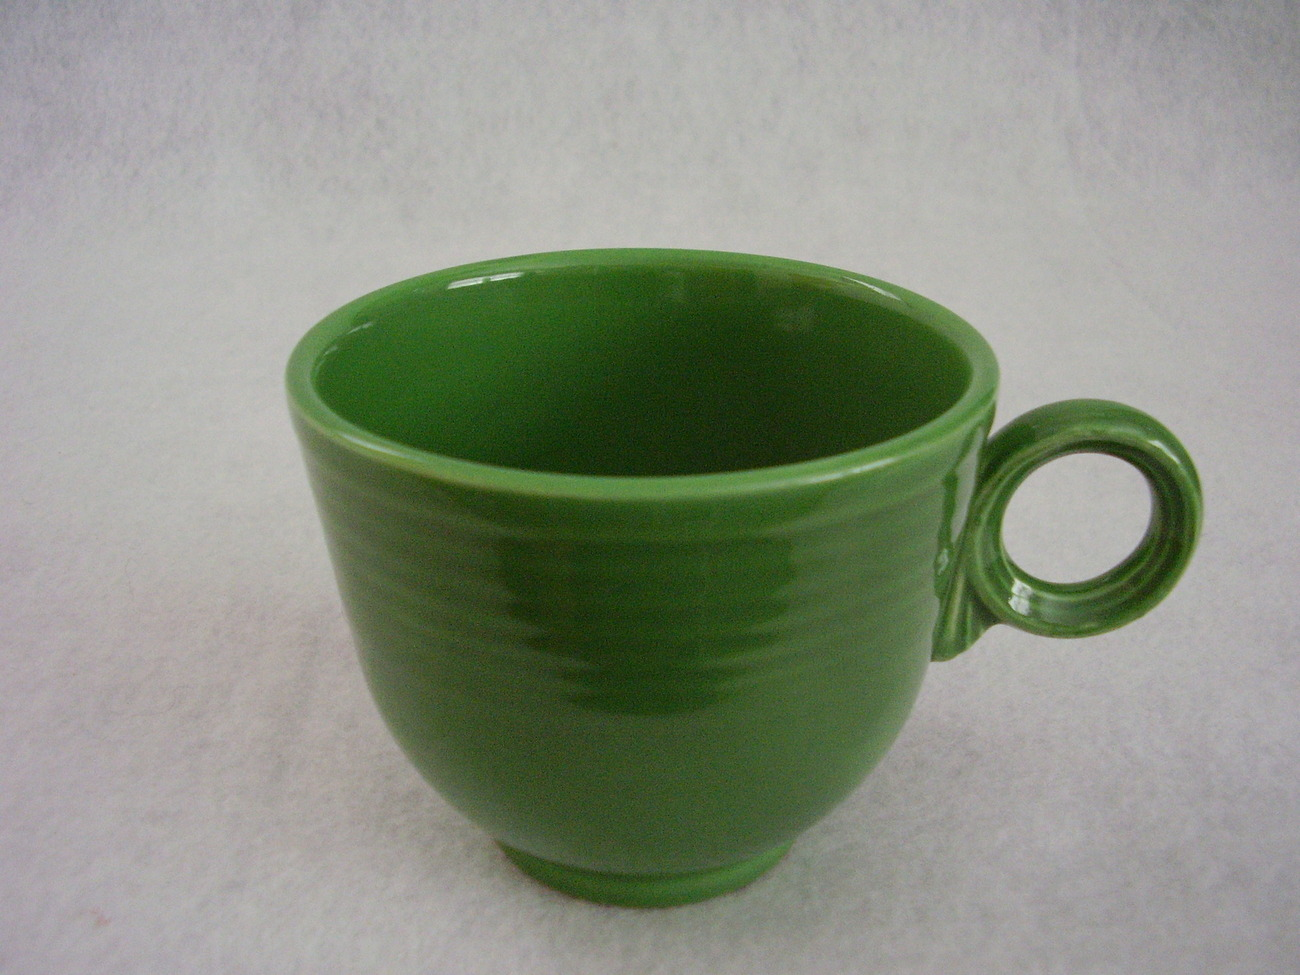 Vintage Fiestaware Medium Green Ring Handle Teacup Fiesta  D